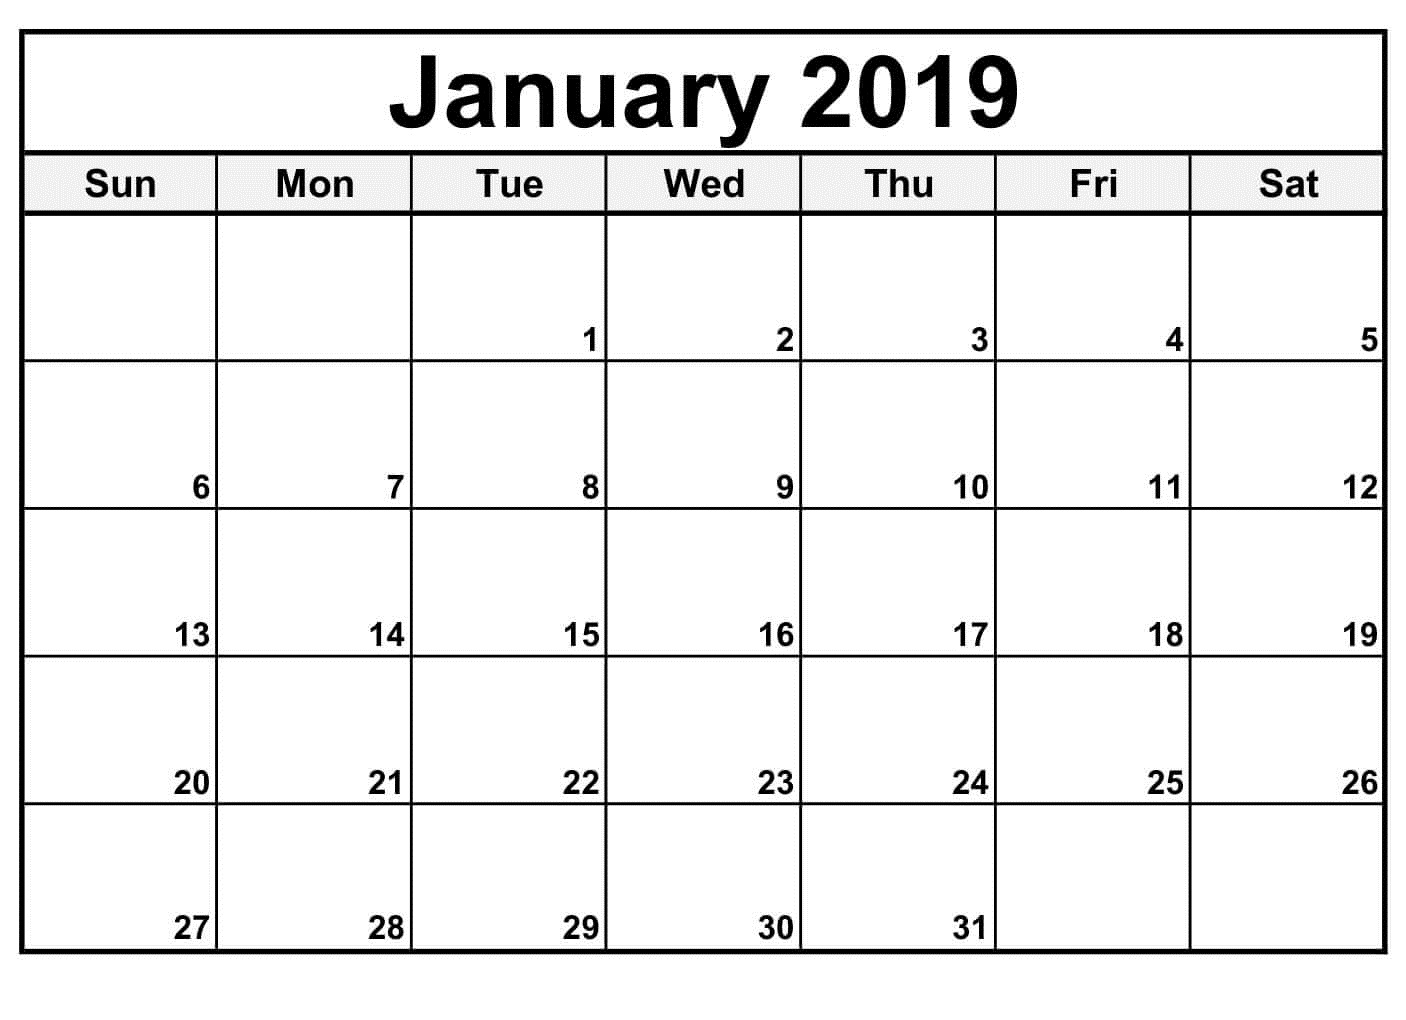 January 2019 Monthly Customized Calendar